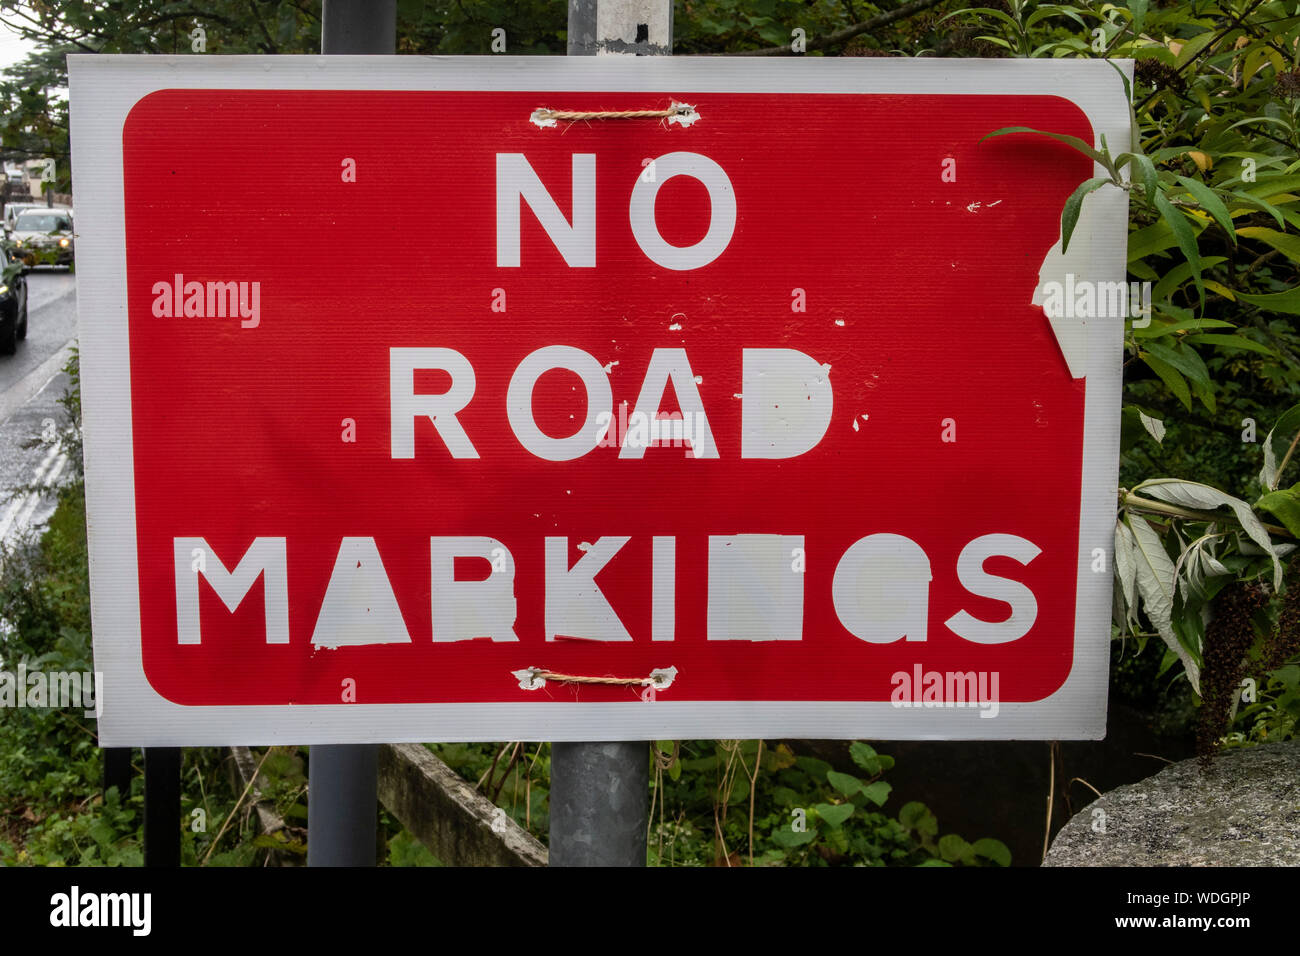 """Almost illegible sign saying """"No road markings"""". Stock Photo"""